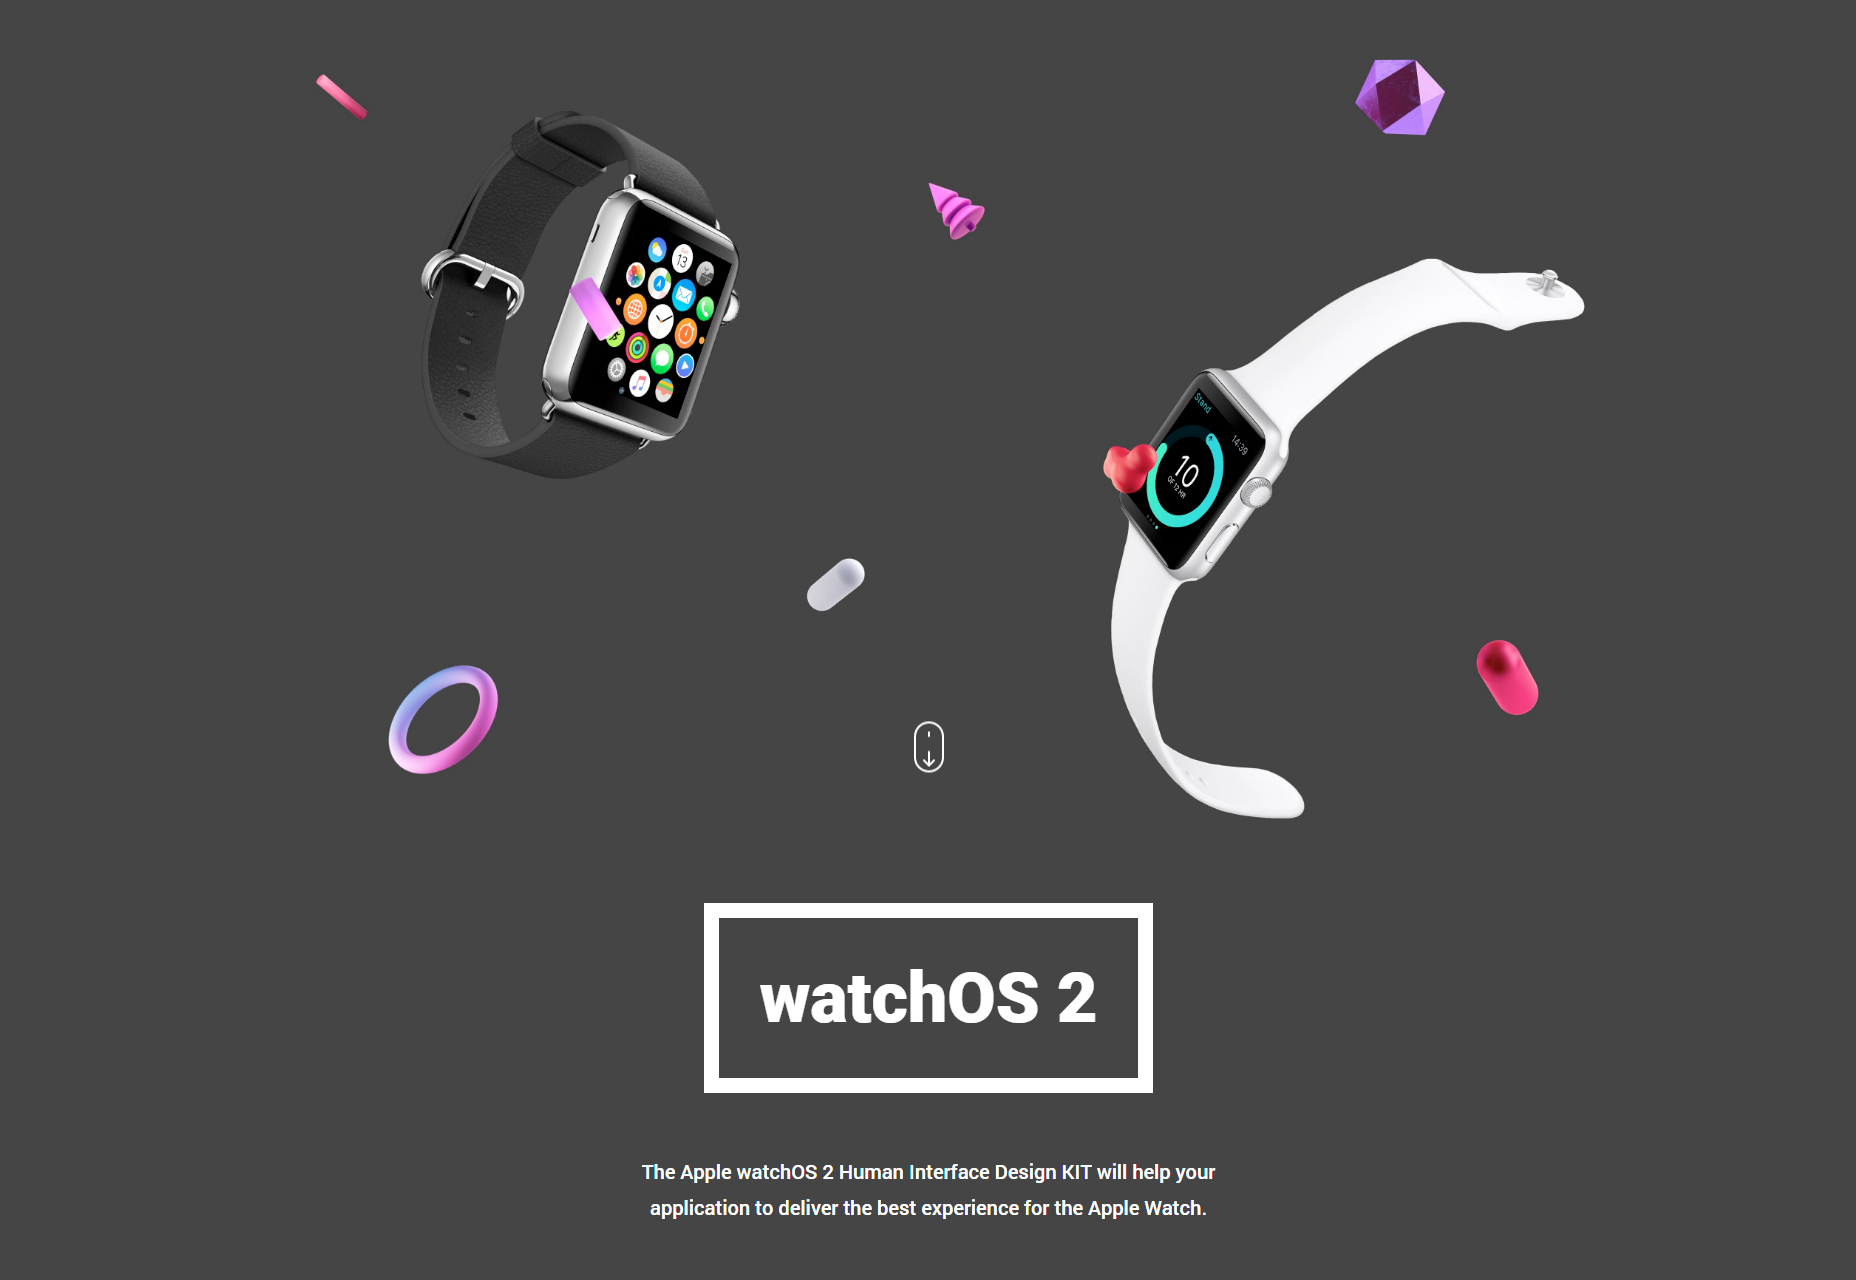 watchos2-user-interface-design-kit